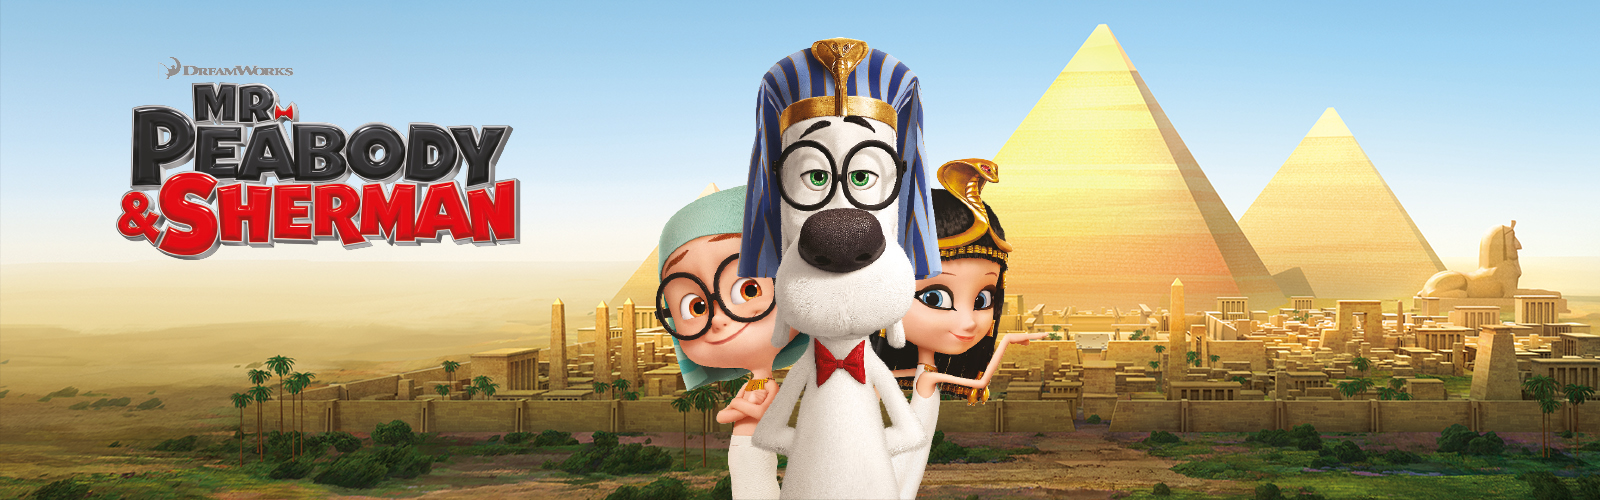 animated banner of peabody sherman film for cracking histories with characters and pyramids